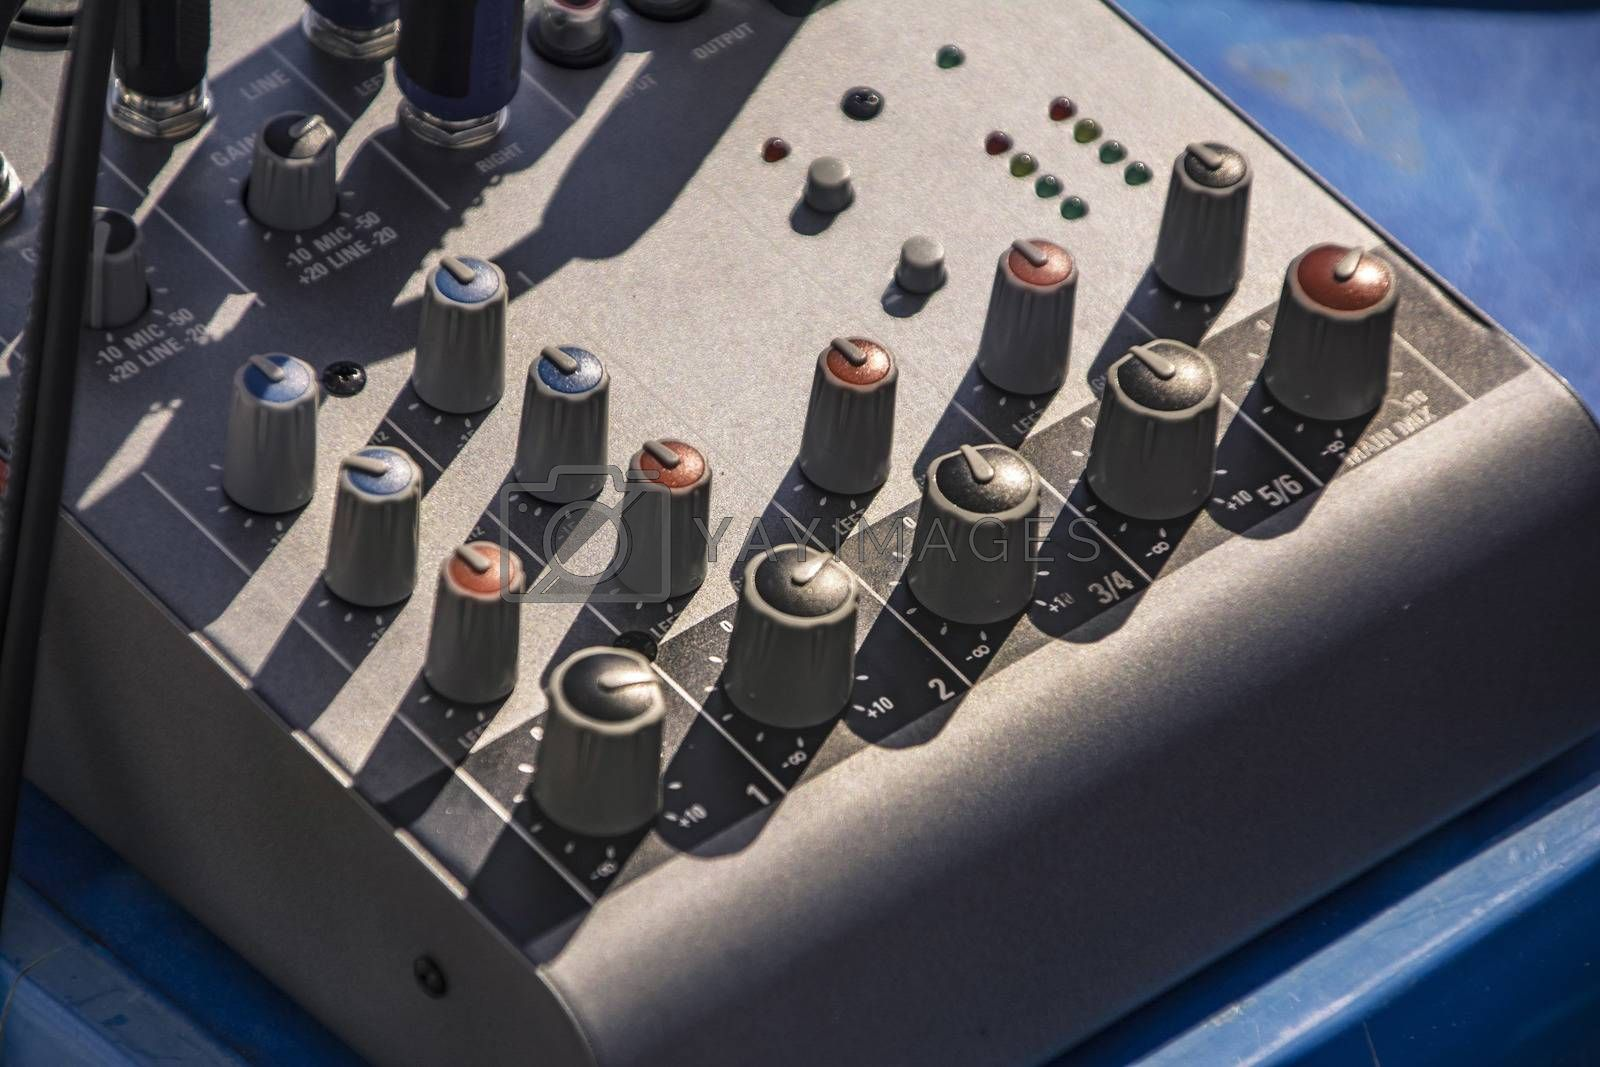 Two-channel audio mixer used in music production